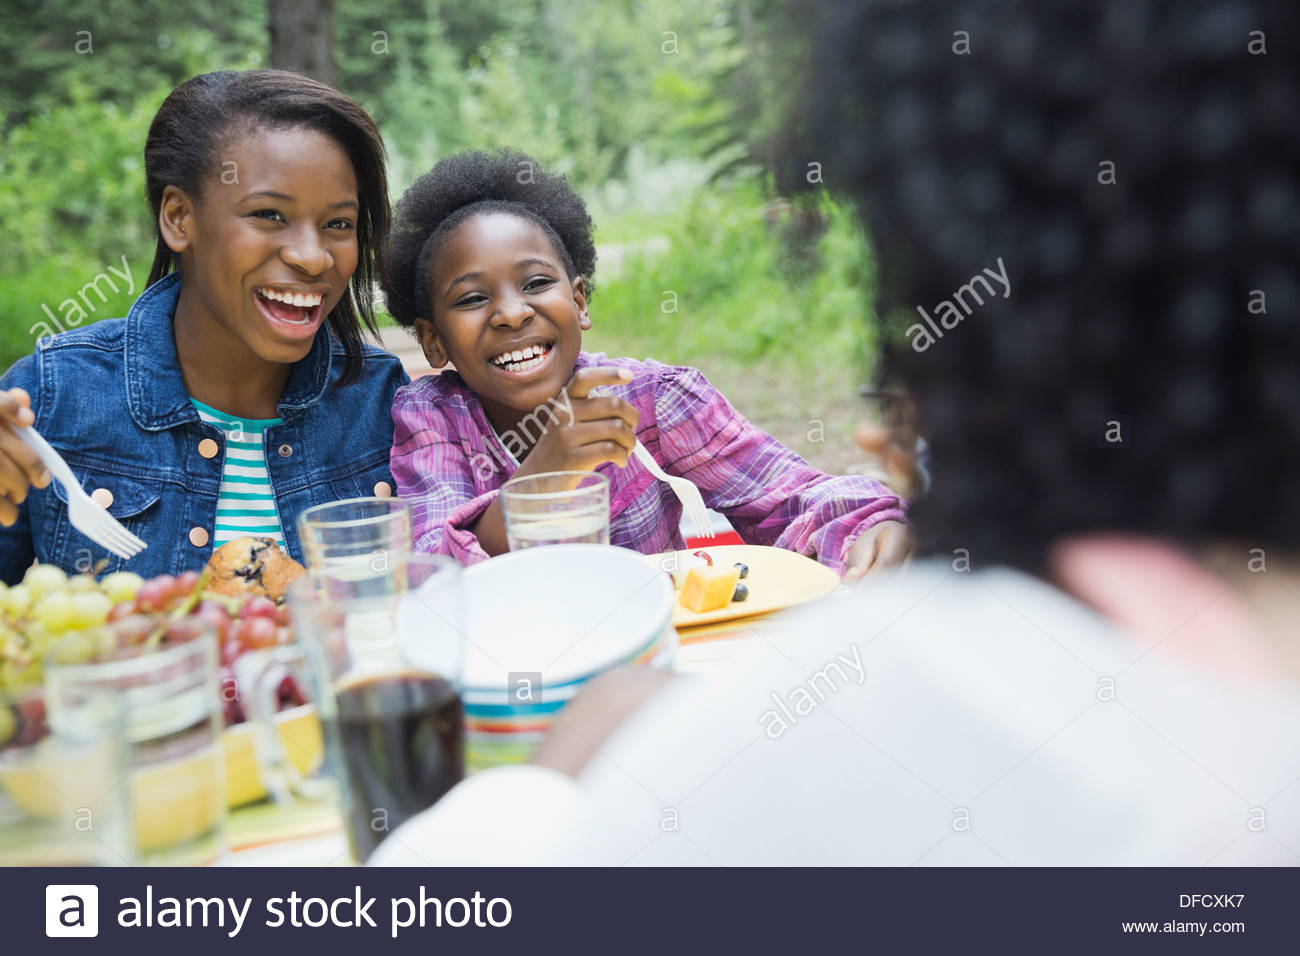 Siblings having a meal at campsite - Stock Image